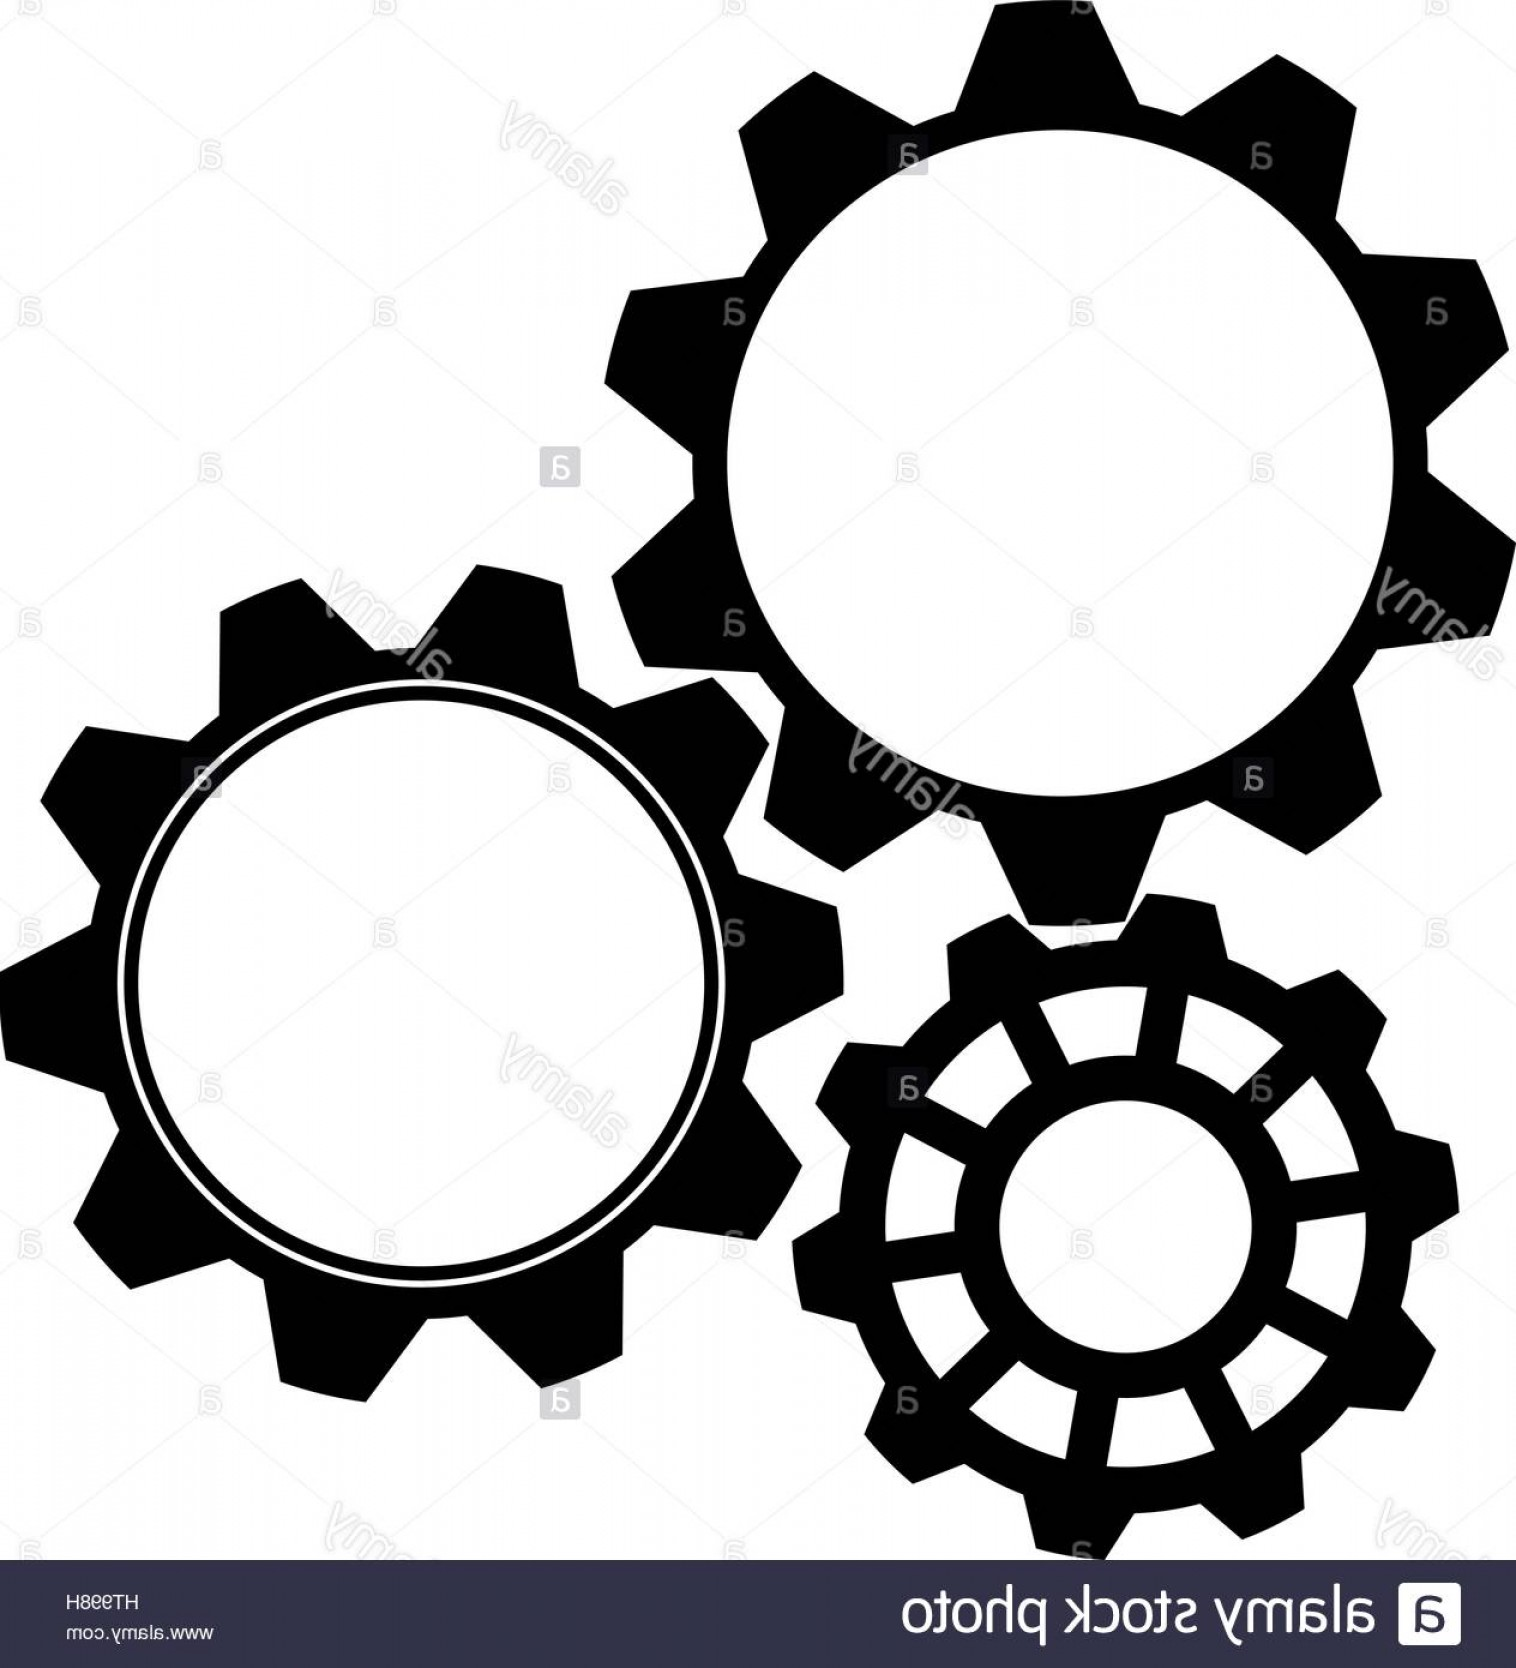 Vector Gear Graphics: Stock Photo Gear Icon In Black On A White Background Vector Graphics